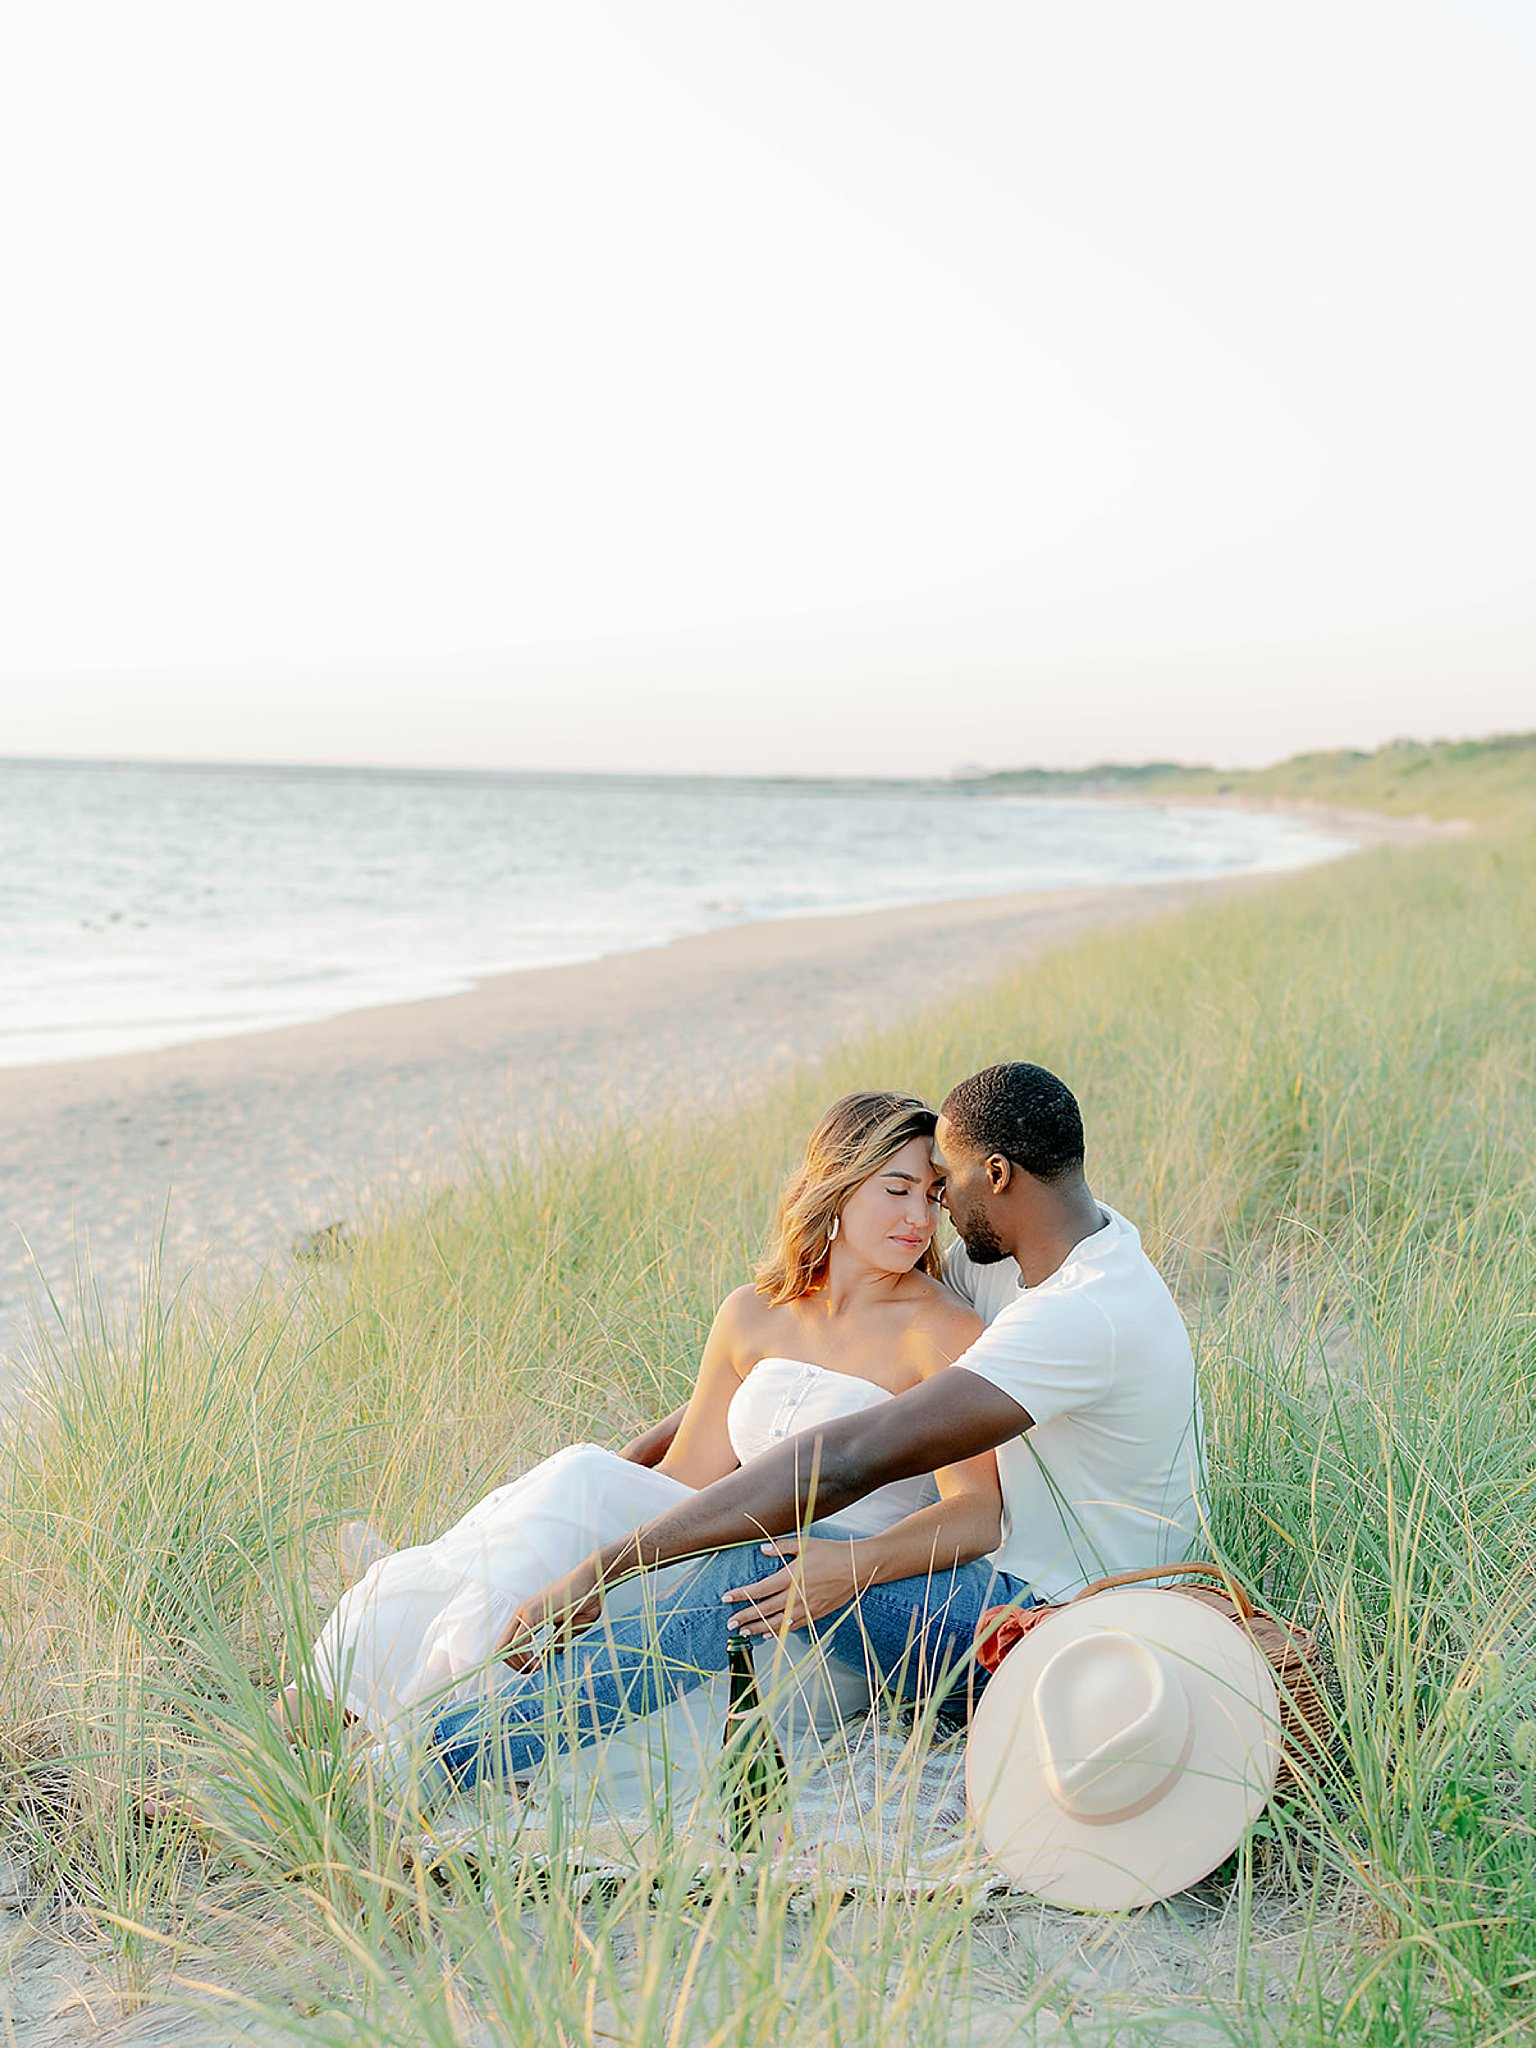 Willow Creek Winery Cape May New Jersey Engagement Session Photography by Magdalena Studios JessieLandry 0028